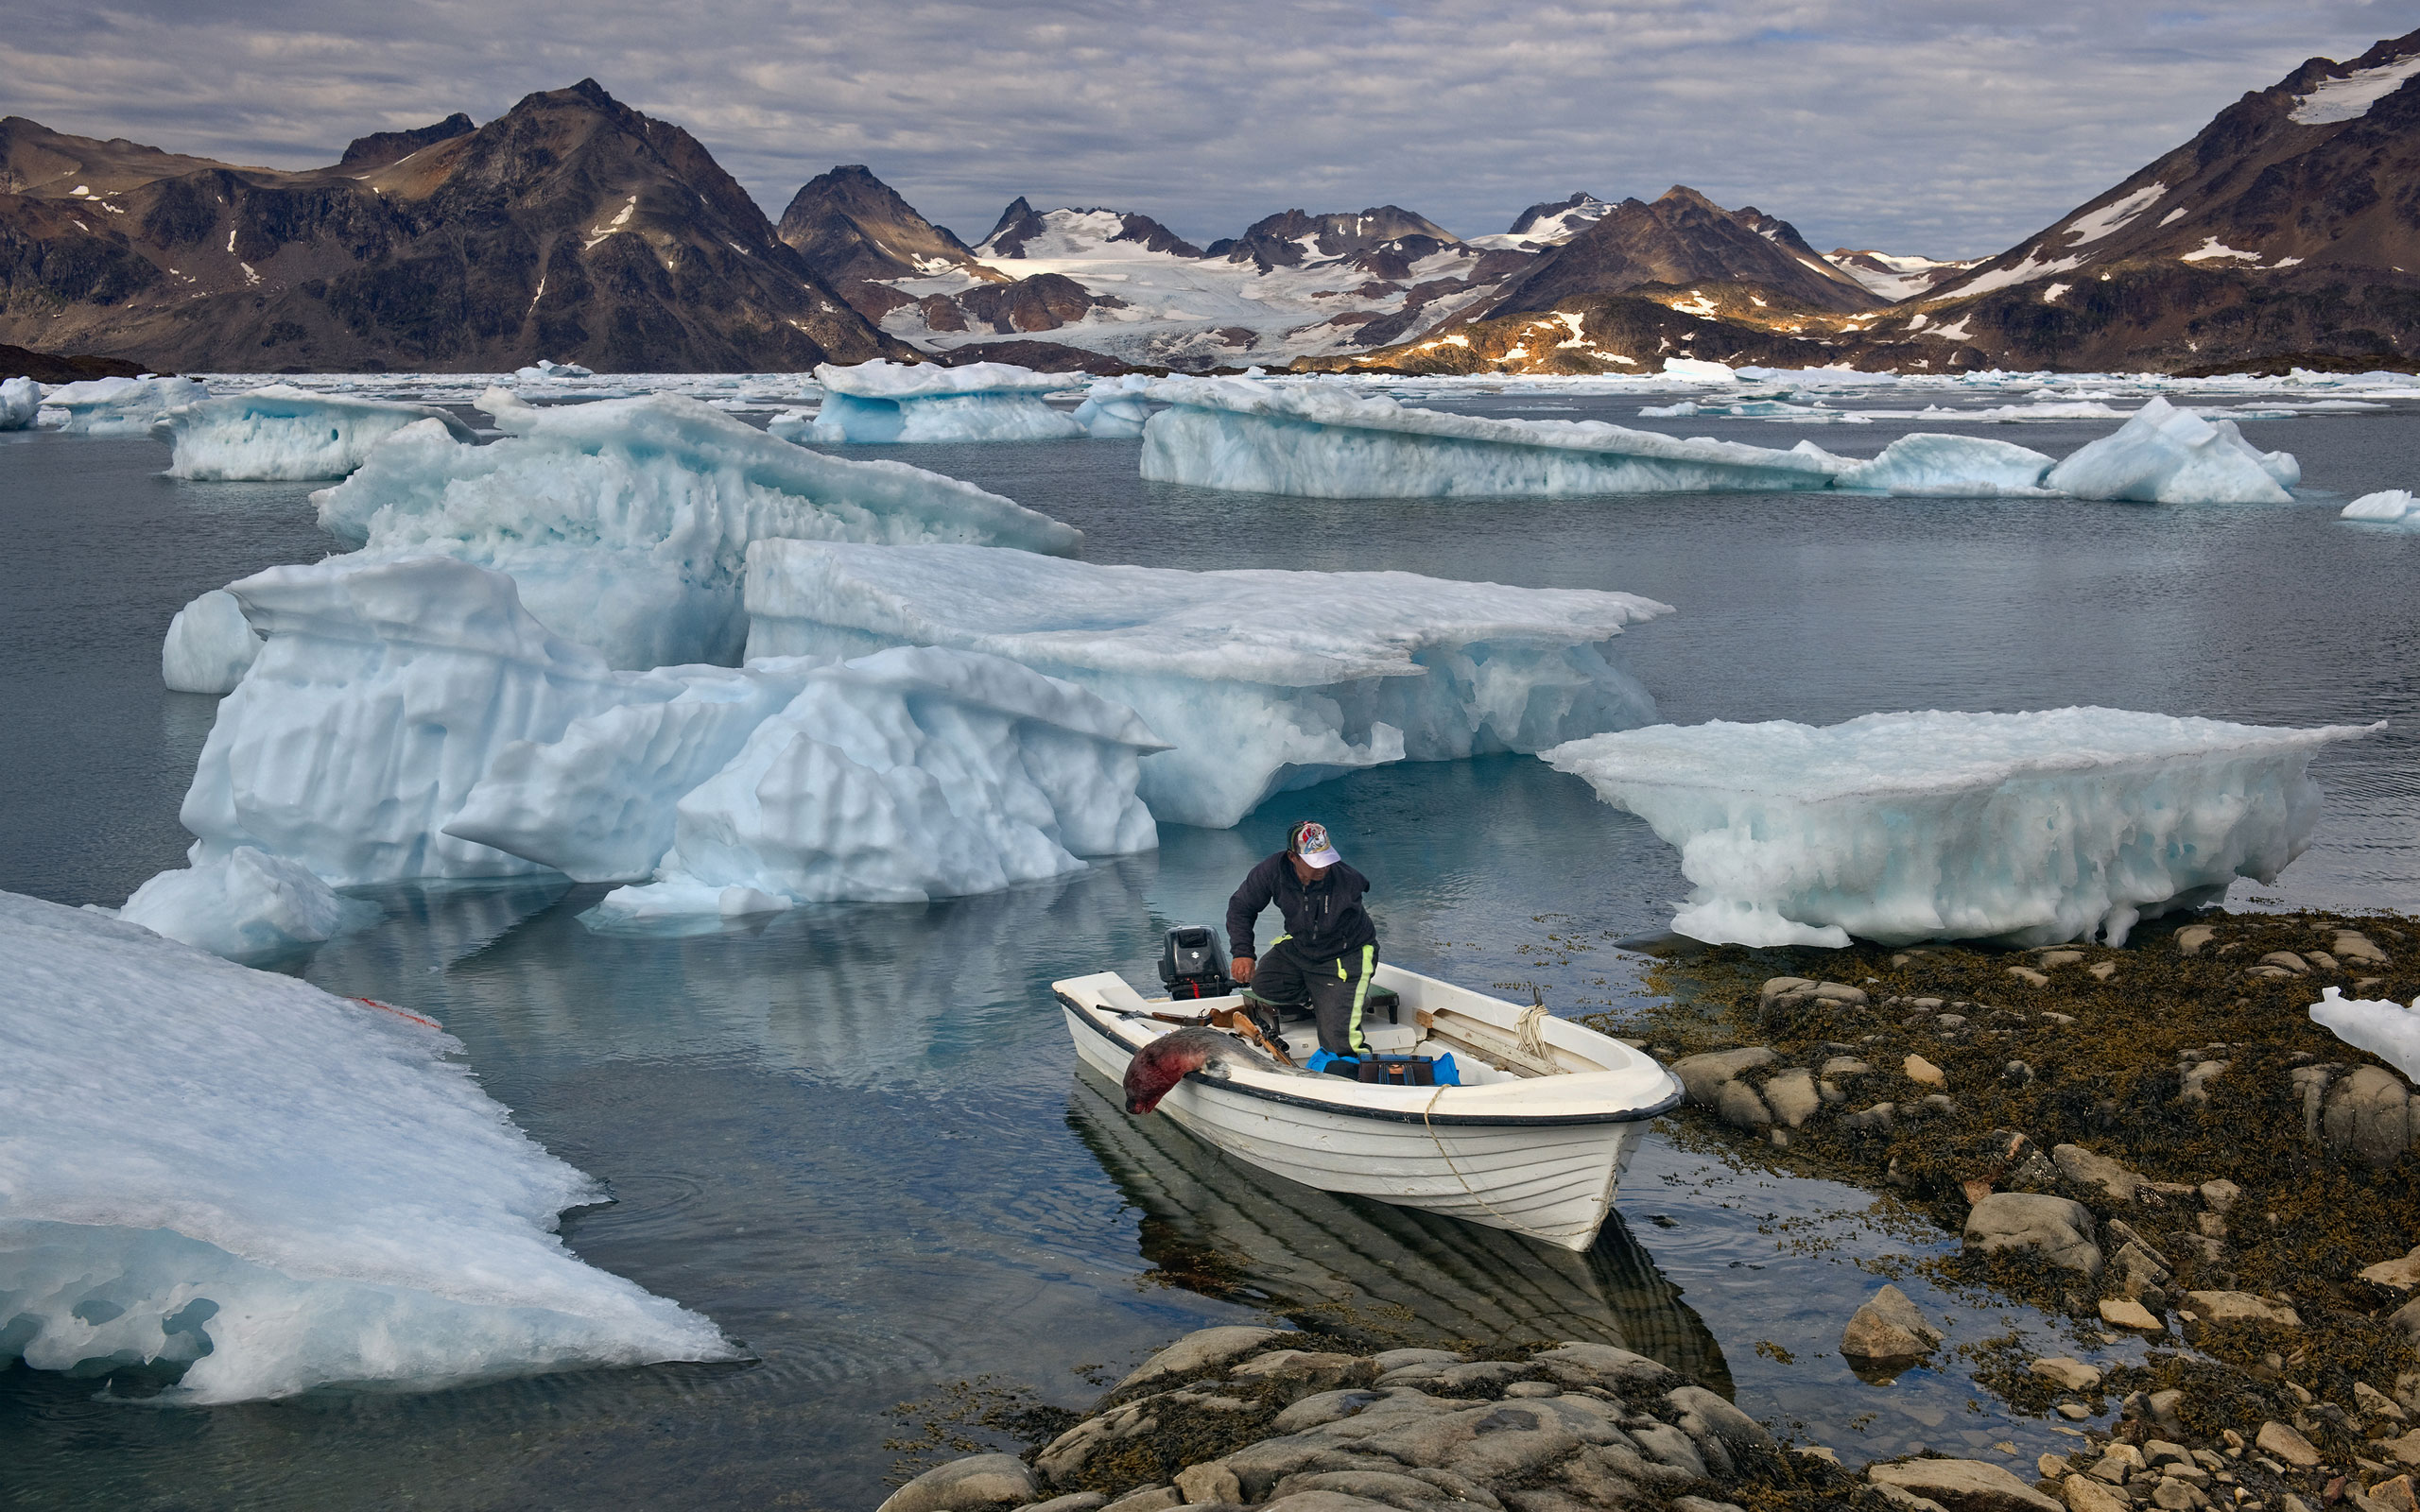 One-armed Inuit man coming back after seal hunt to settlement of Kulusuk. Torsuut Tunoq sound, Southeastern Greenland. - Greenland-Iceberg-Factory-1 - Mike Reyfman Photography